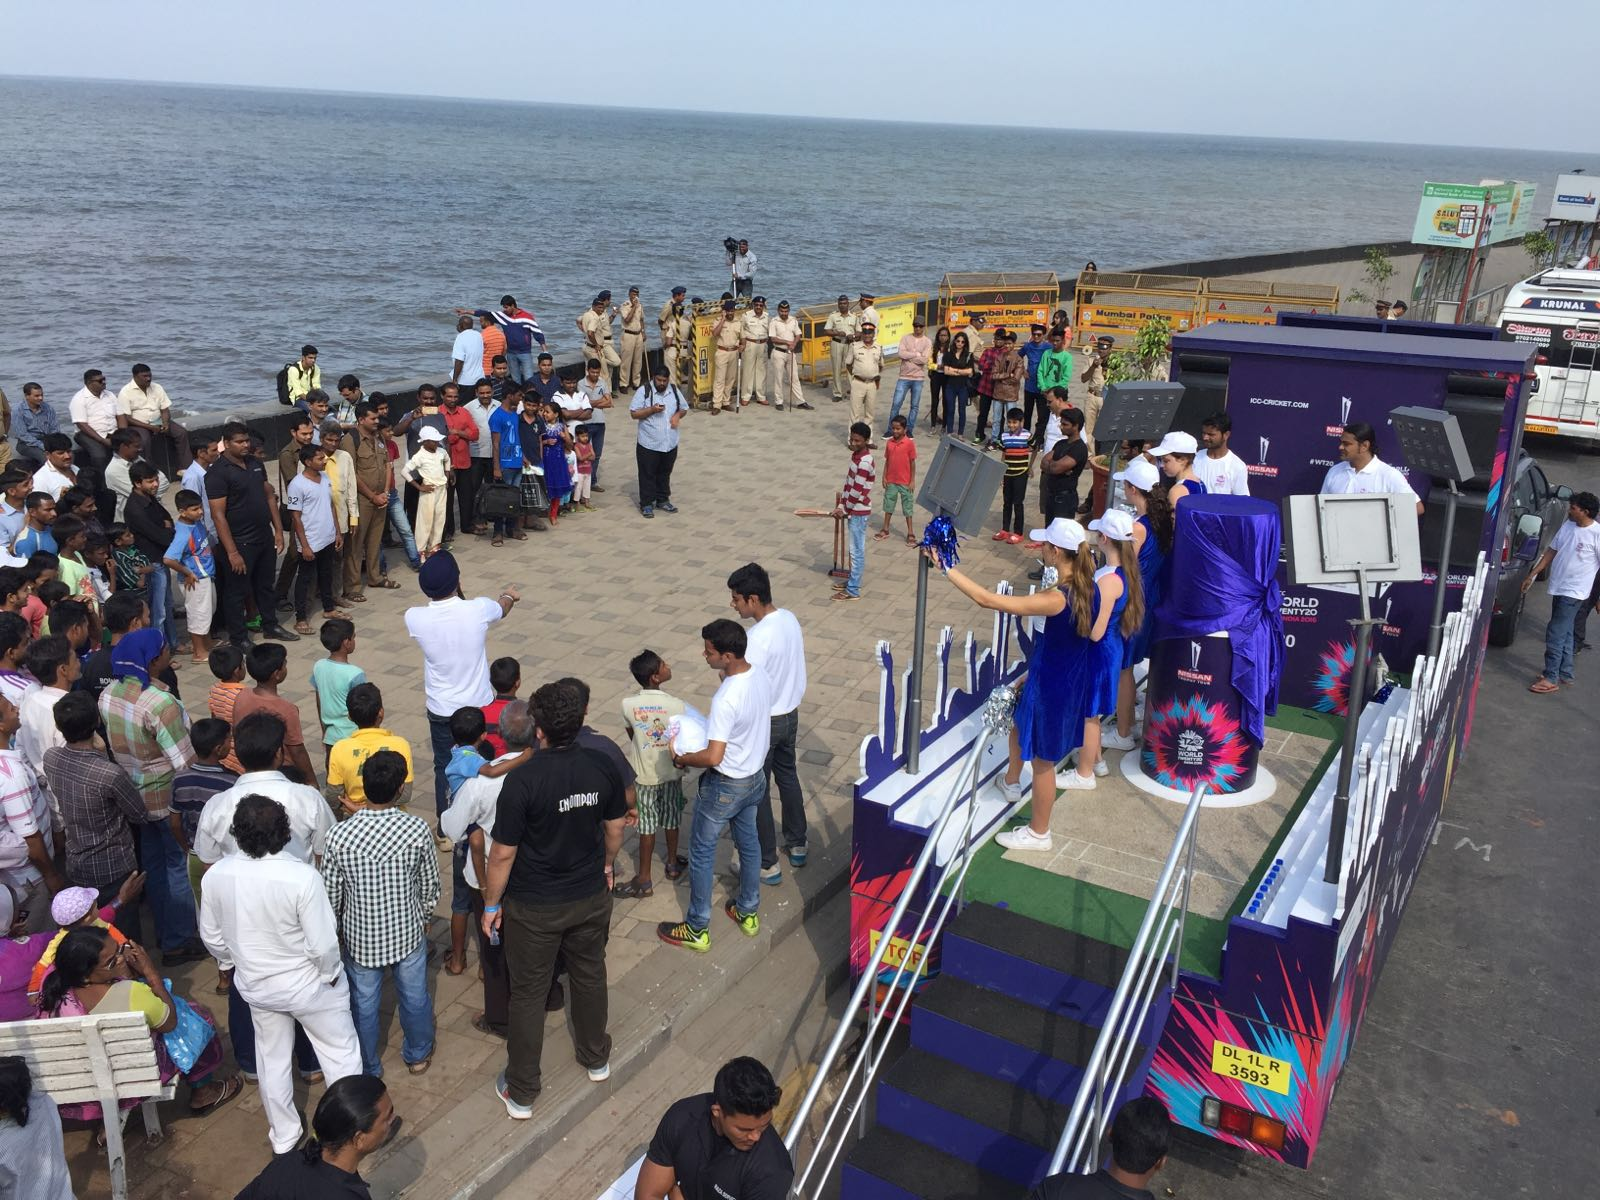 Tips for a Worli Seaface Outing, You Might See Some Special Programs